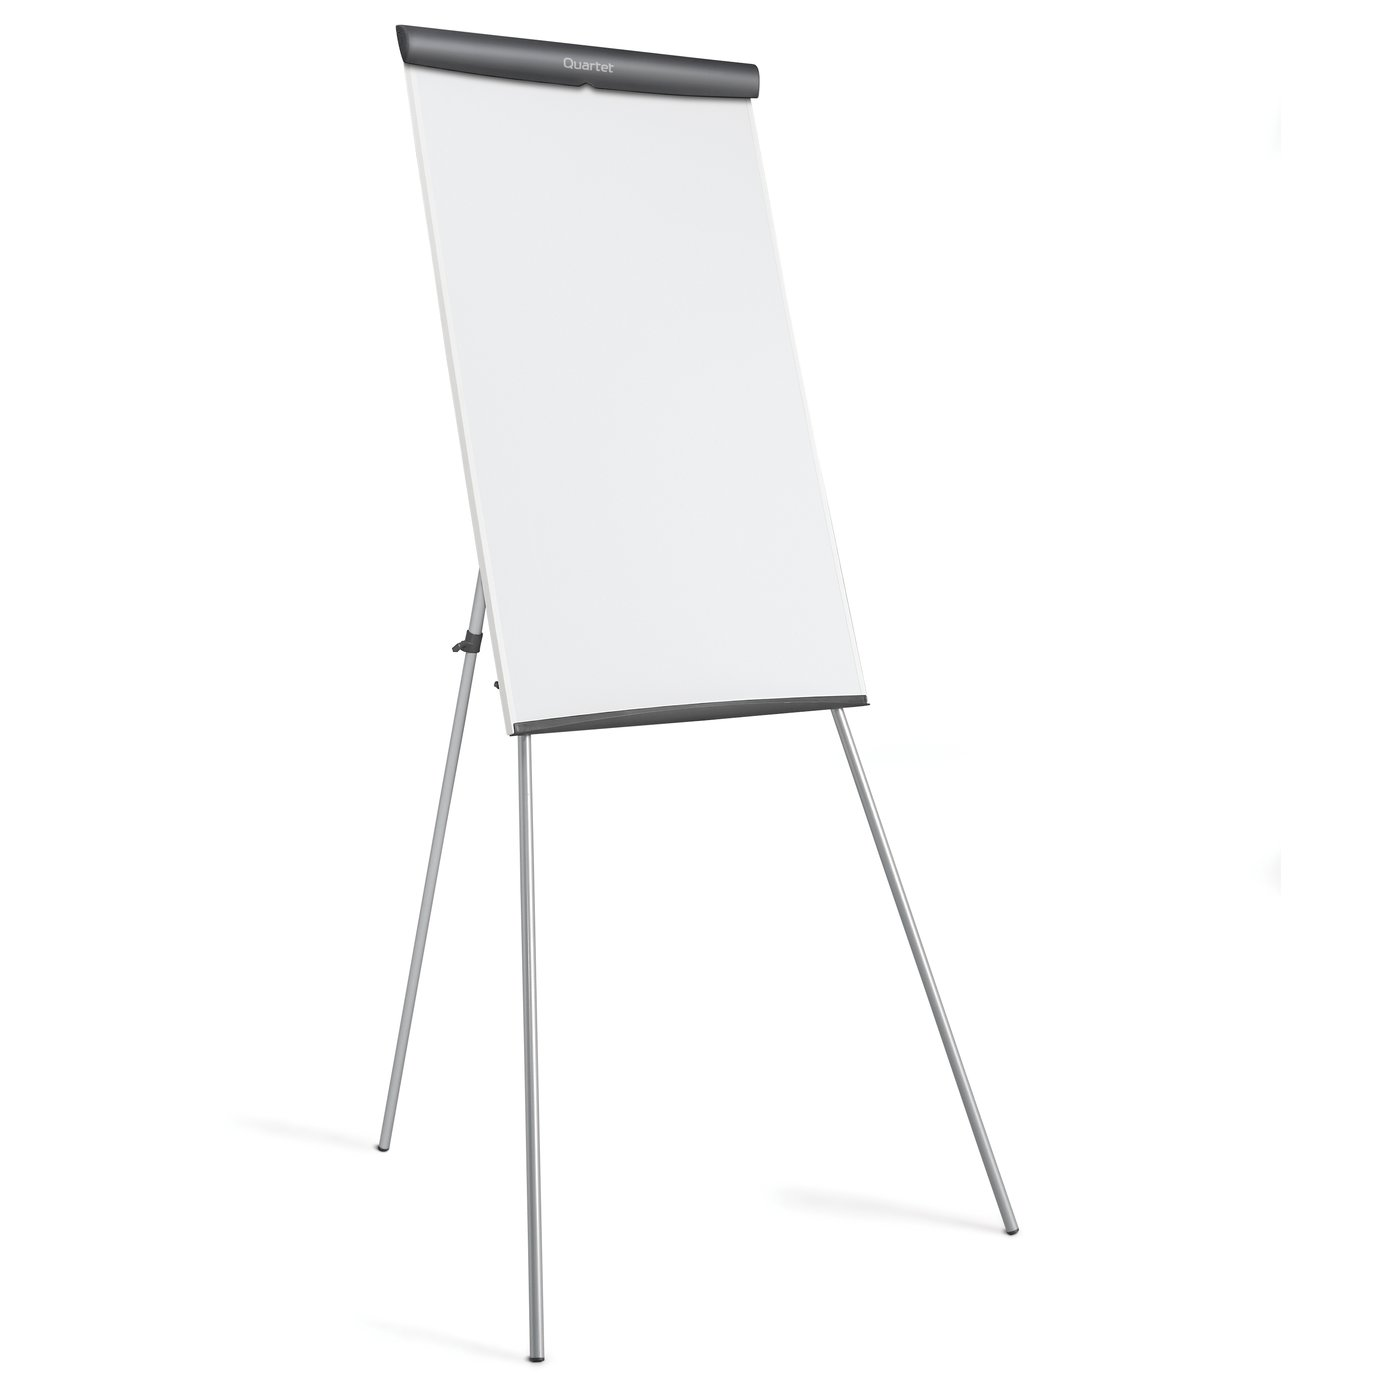 quartet furniture. Quartet® Melamine Presentation Easel, Whiteboard/Flipchart, 3\u0027 X 2\u0027, Quartet Furniture